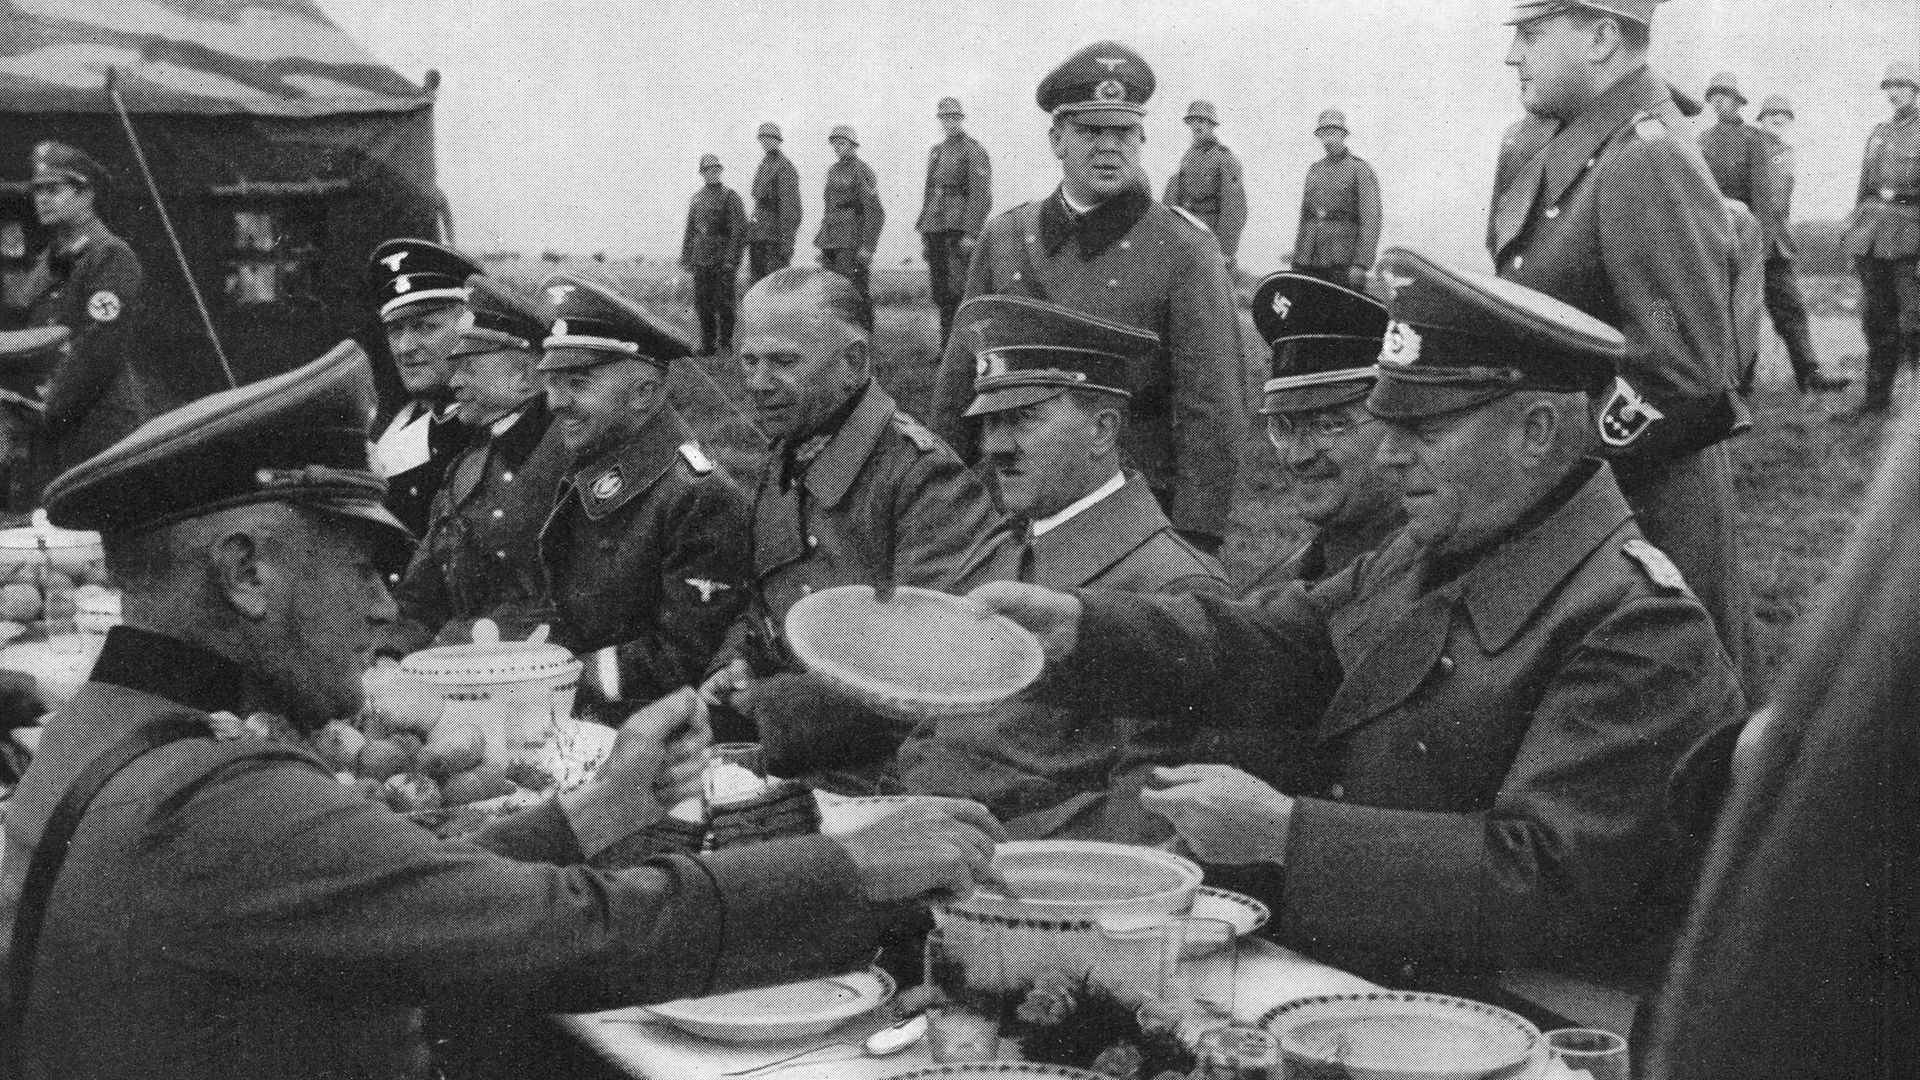 Nazi leader Adolf Hitler dines alfresco with a group of generals, circa 1940 (question one) - Credit: Henry Guttmann/Hulton Archive/Getty Images